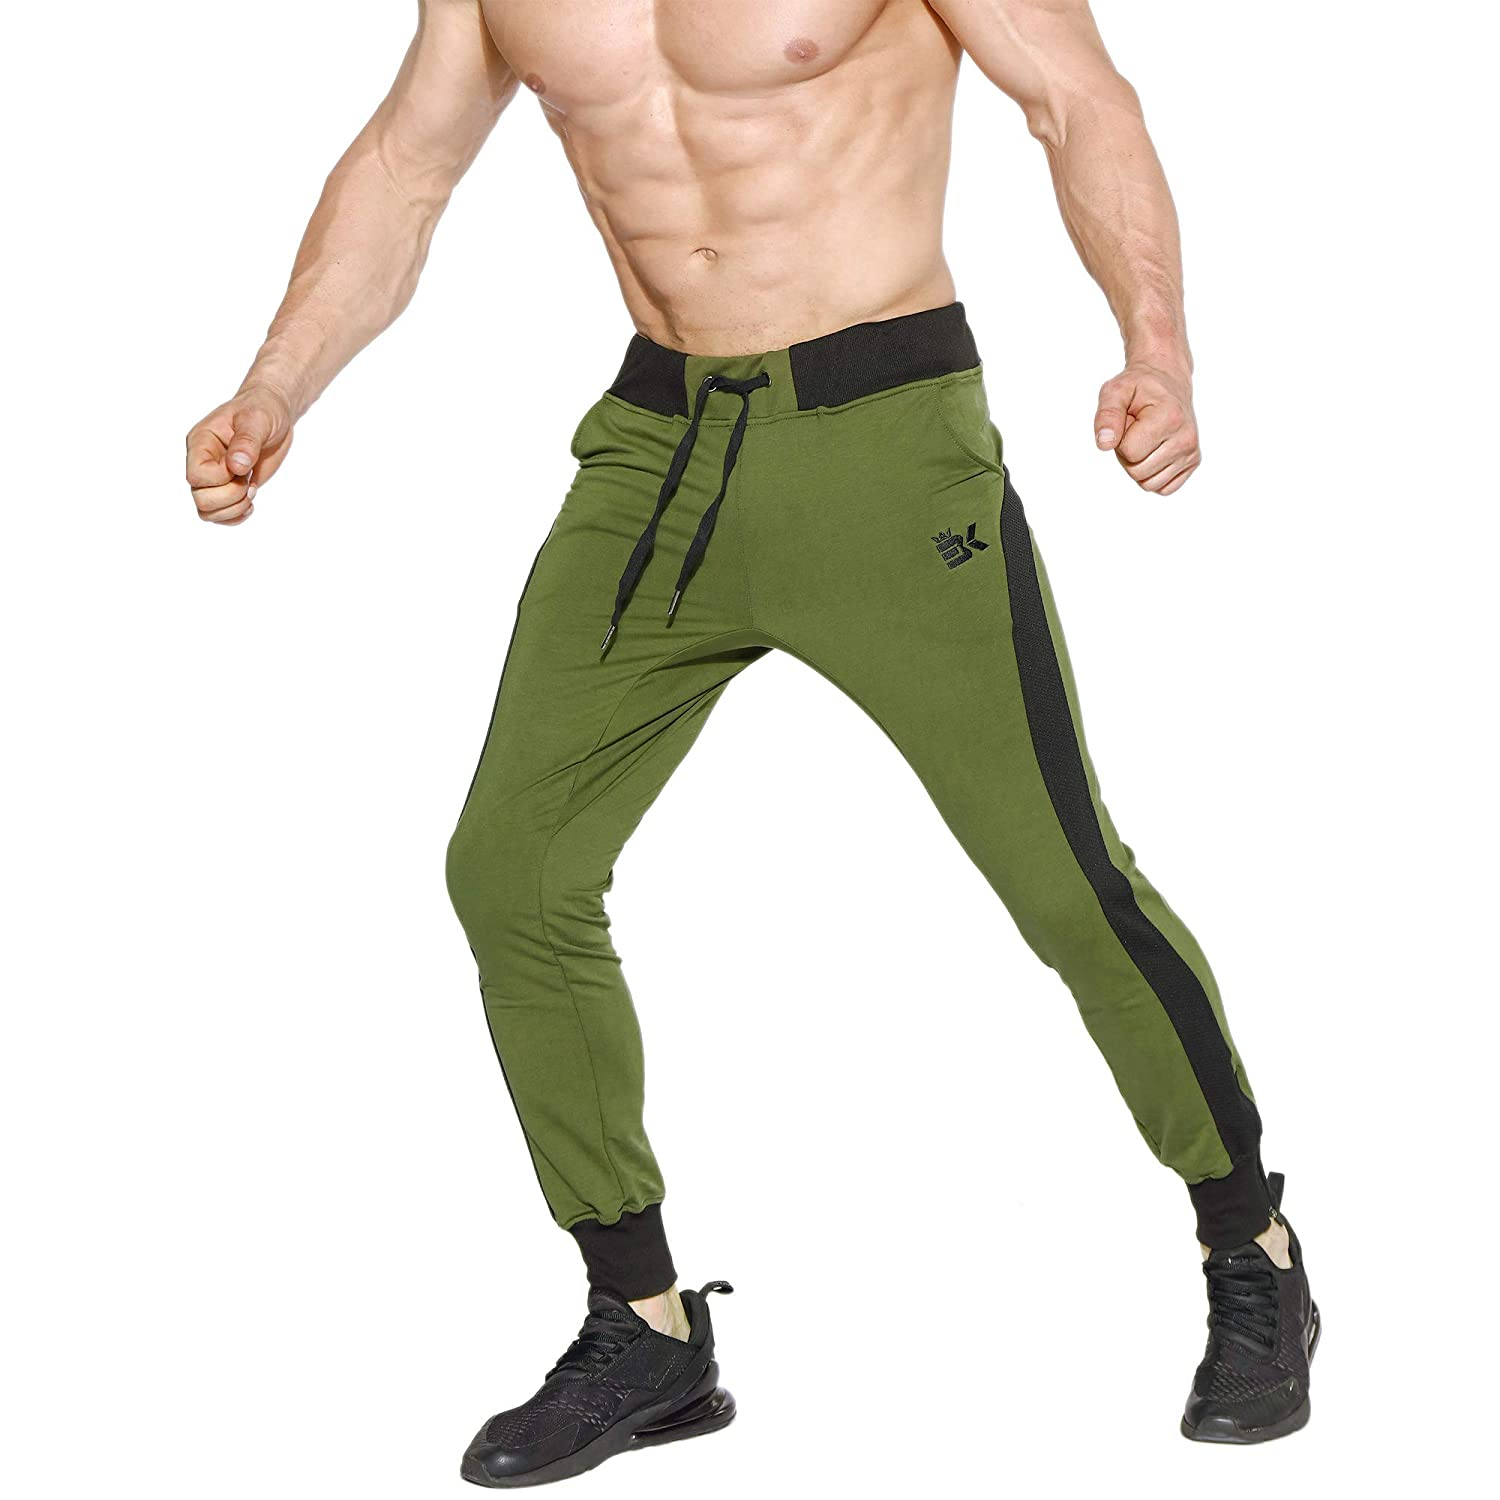 Zenwow Men's Sidemesh GymJoggers Trousers Tracksuit Jogging Bottoms Running Sweatpants with Pockets